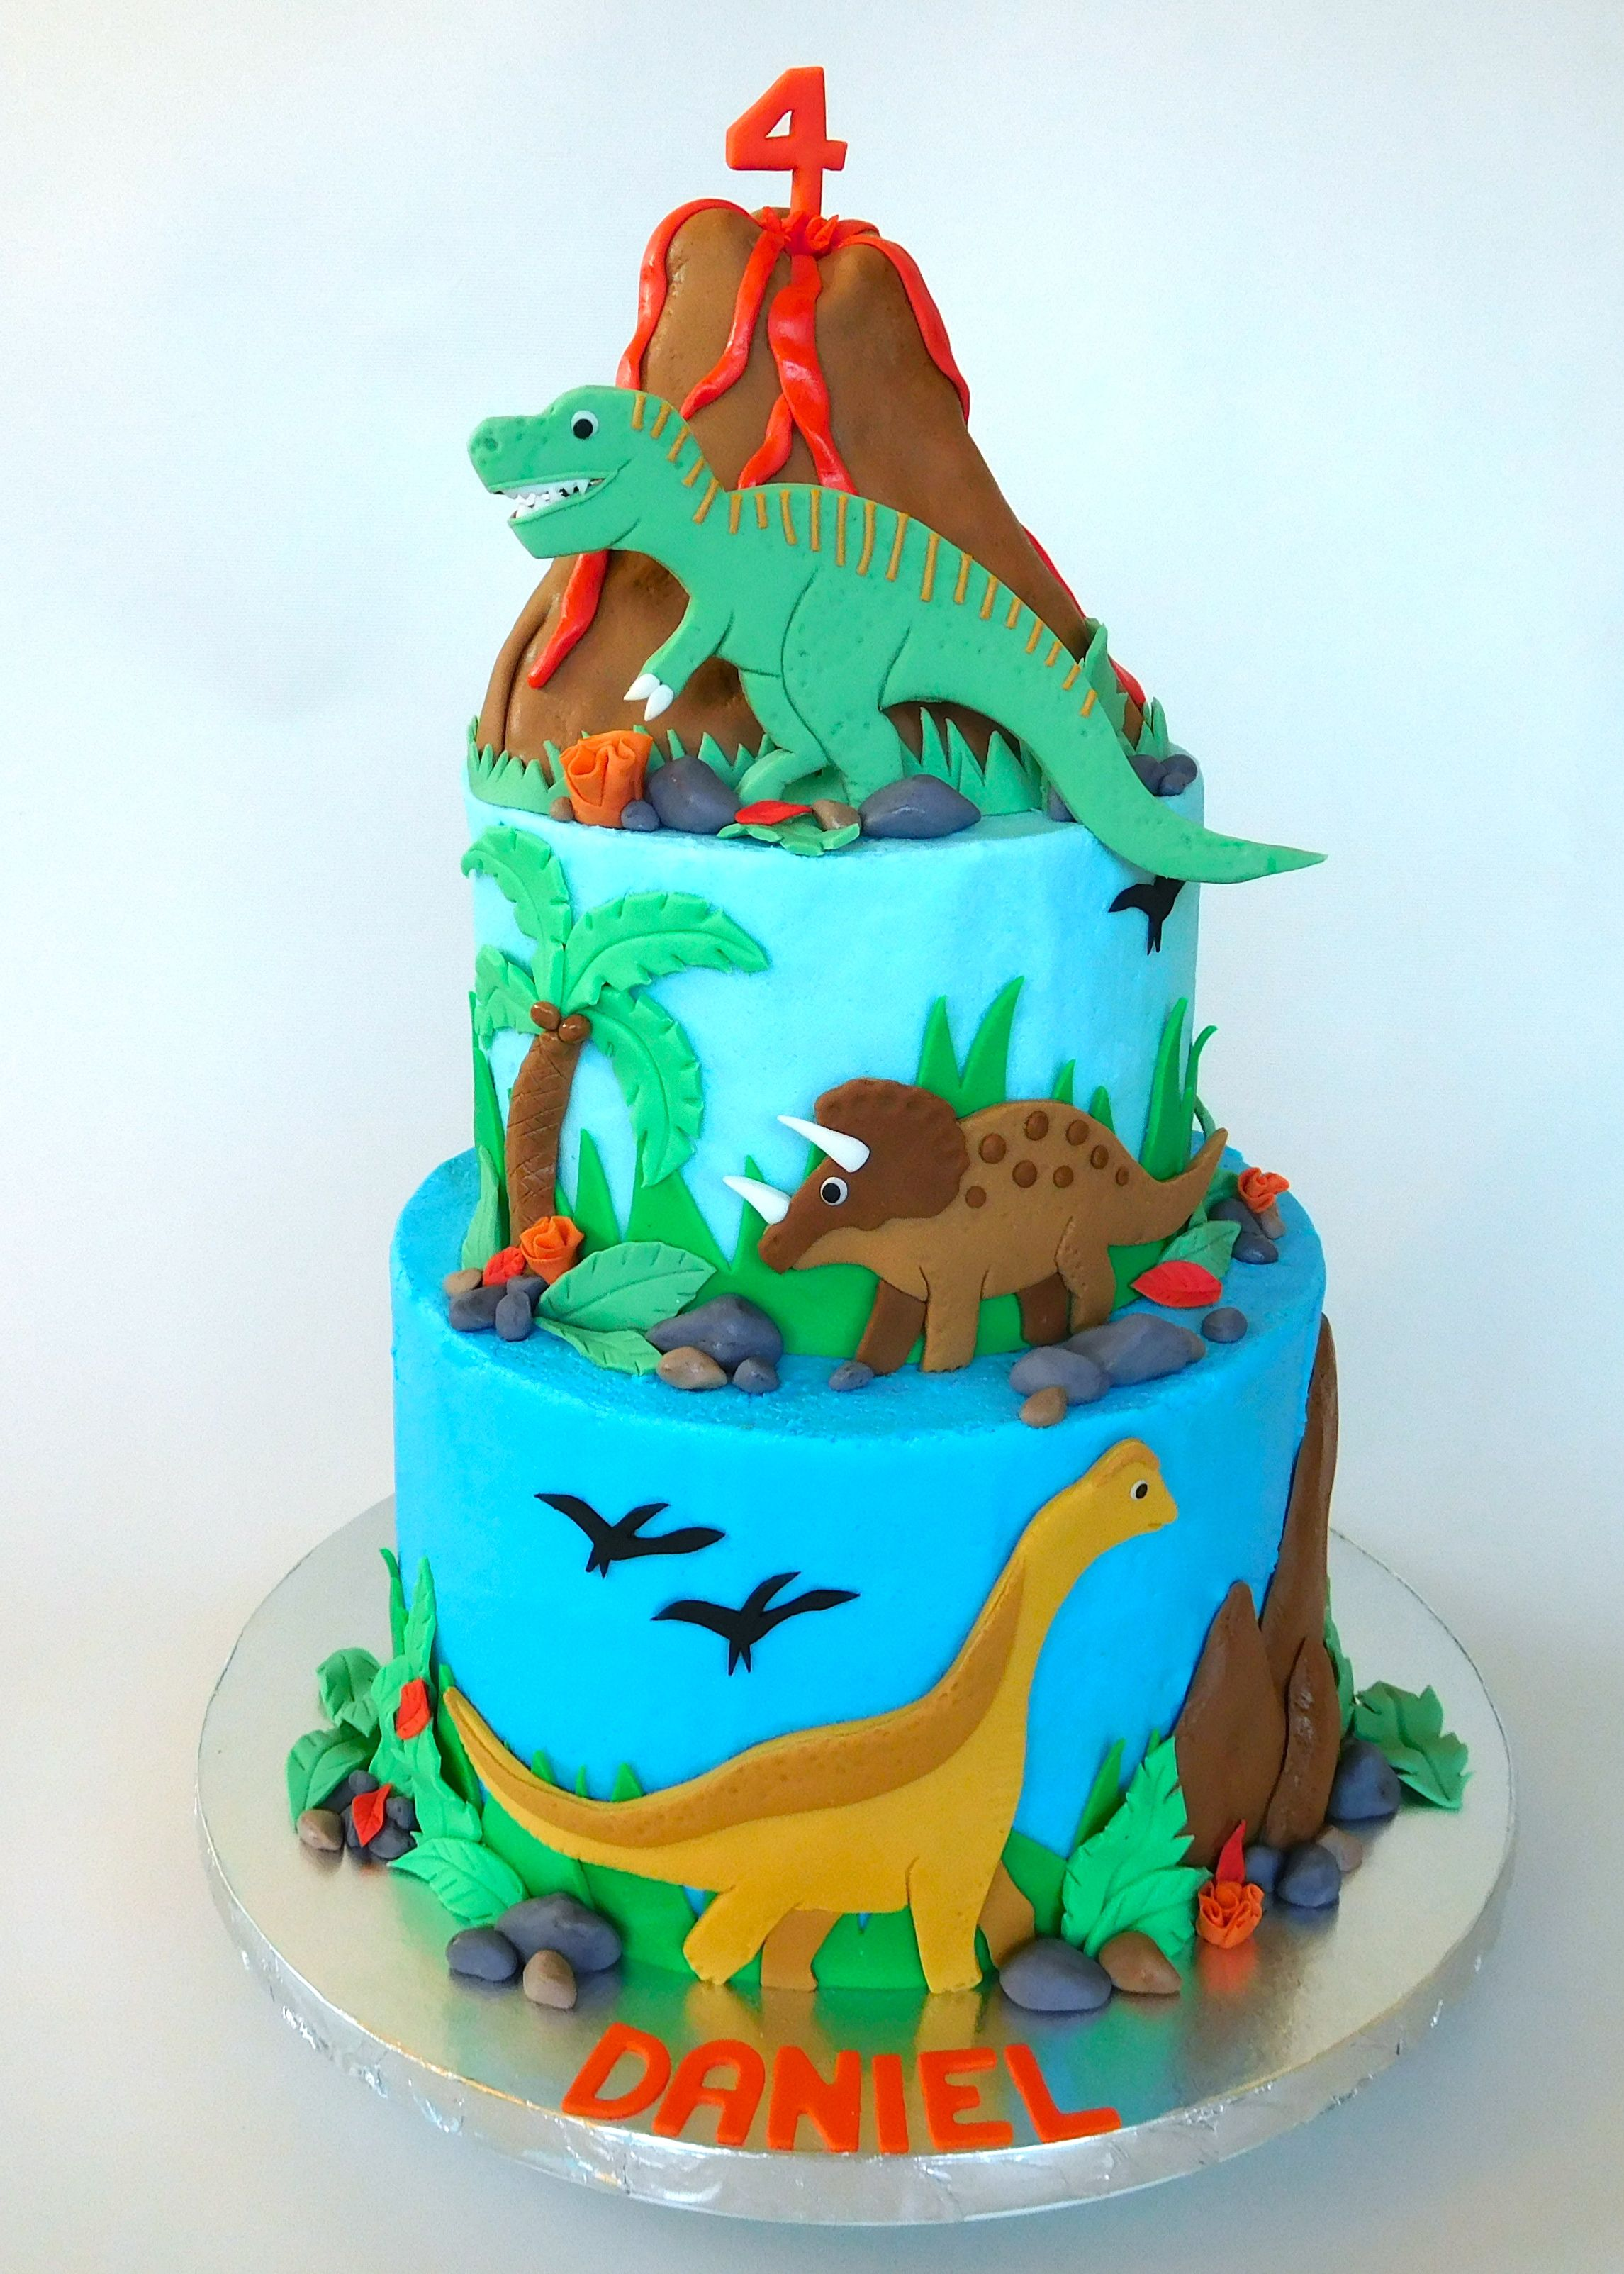 Astonishing Dinosaur Cake Sculpted Rice Crispy Treat Volcano Dinosaur Funny Birthday Cards Online Alyptdamsfinfo